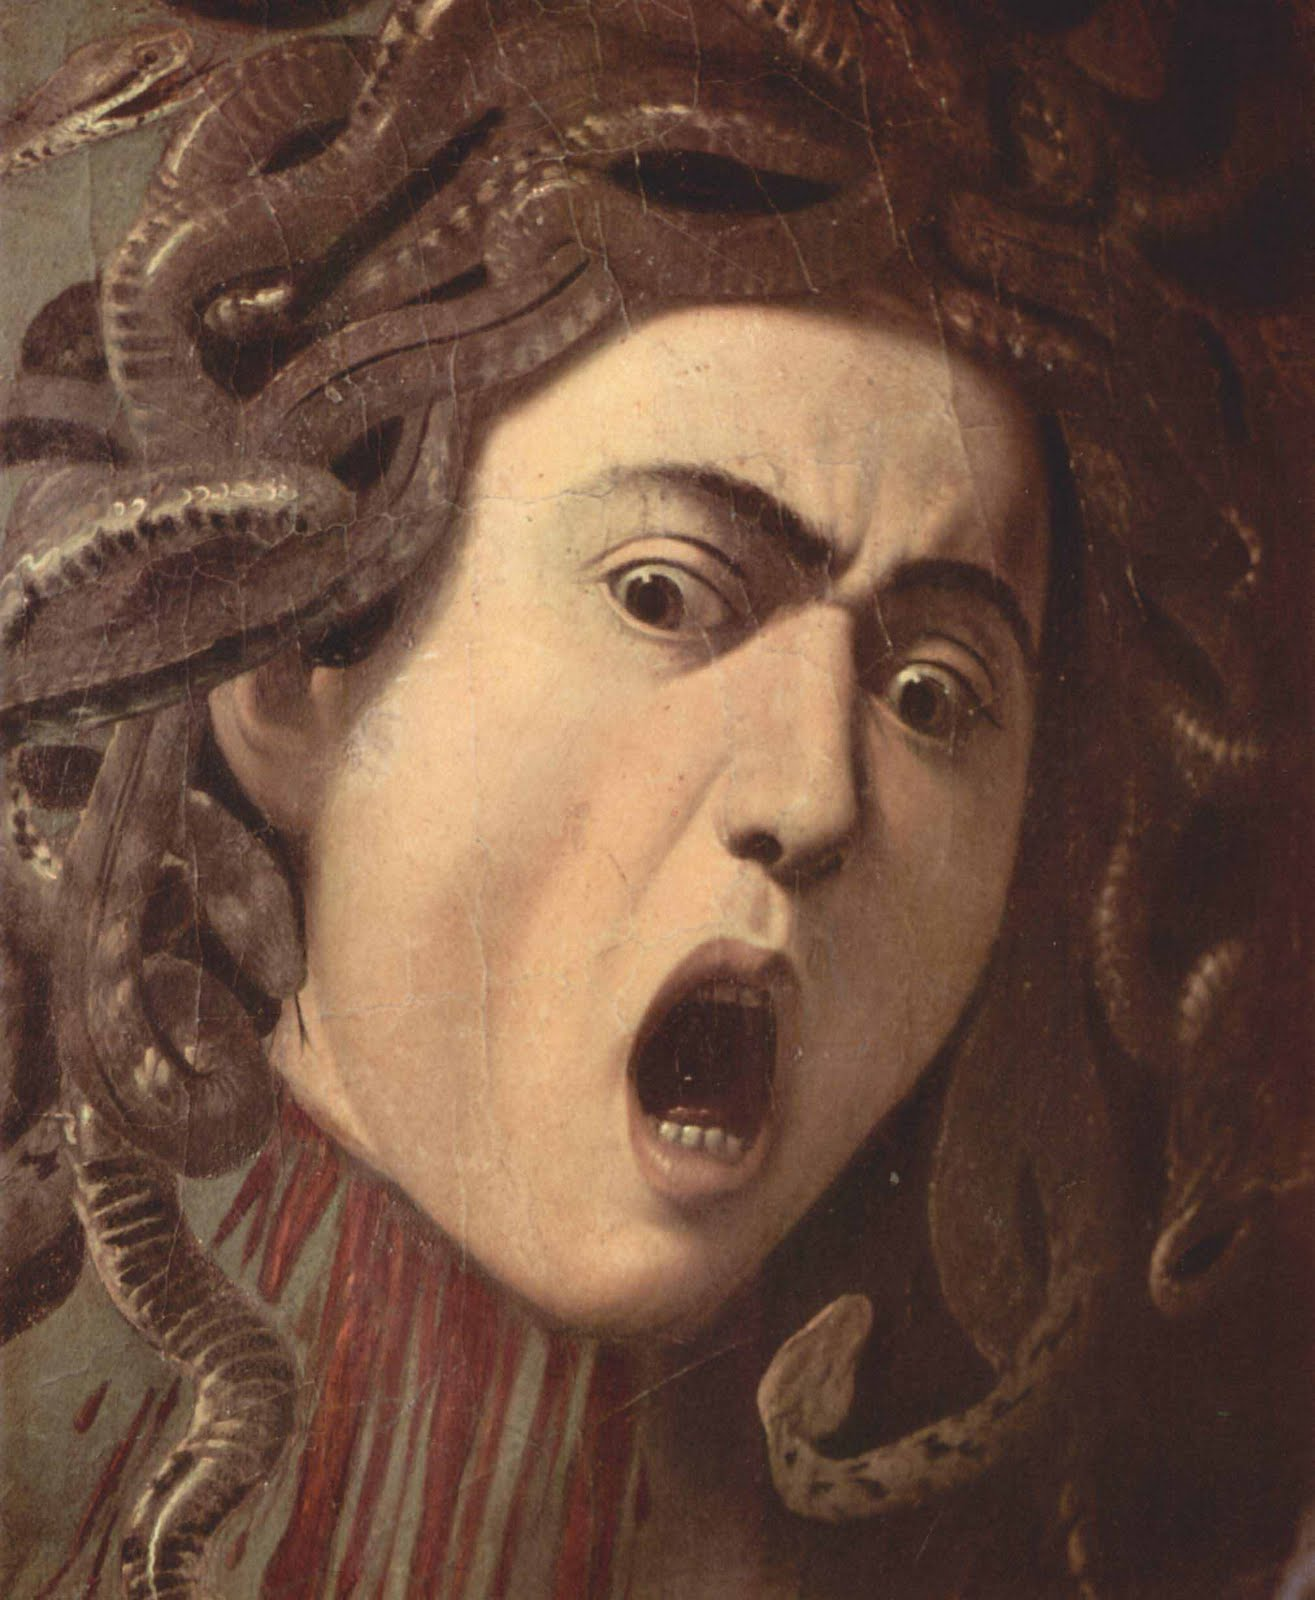 medusa painting by caravaggio medusa was once an exceedingly beautiful